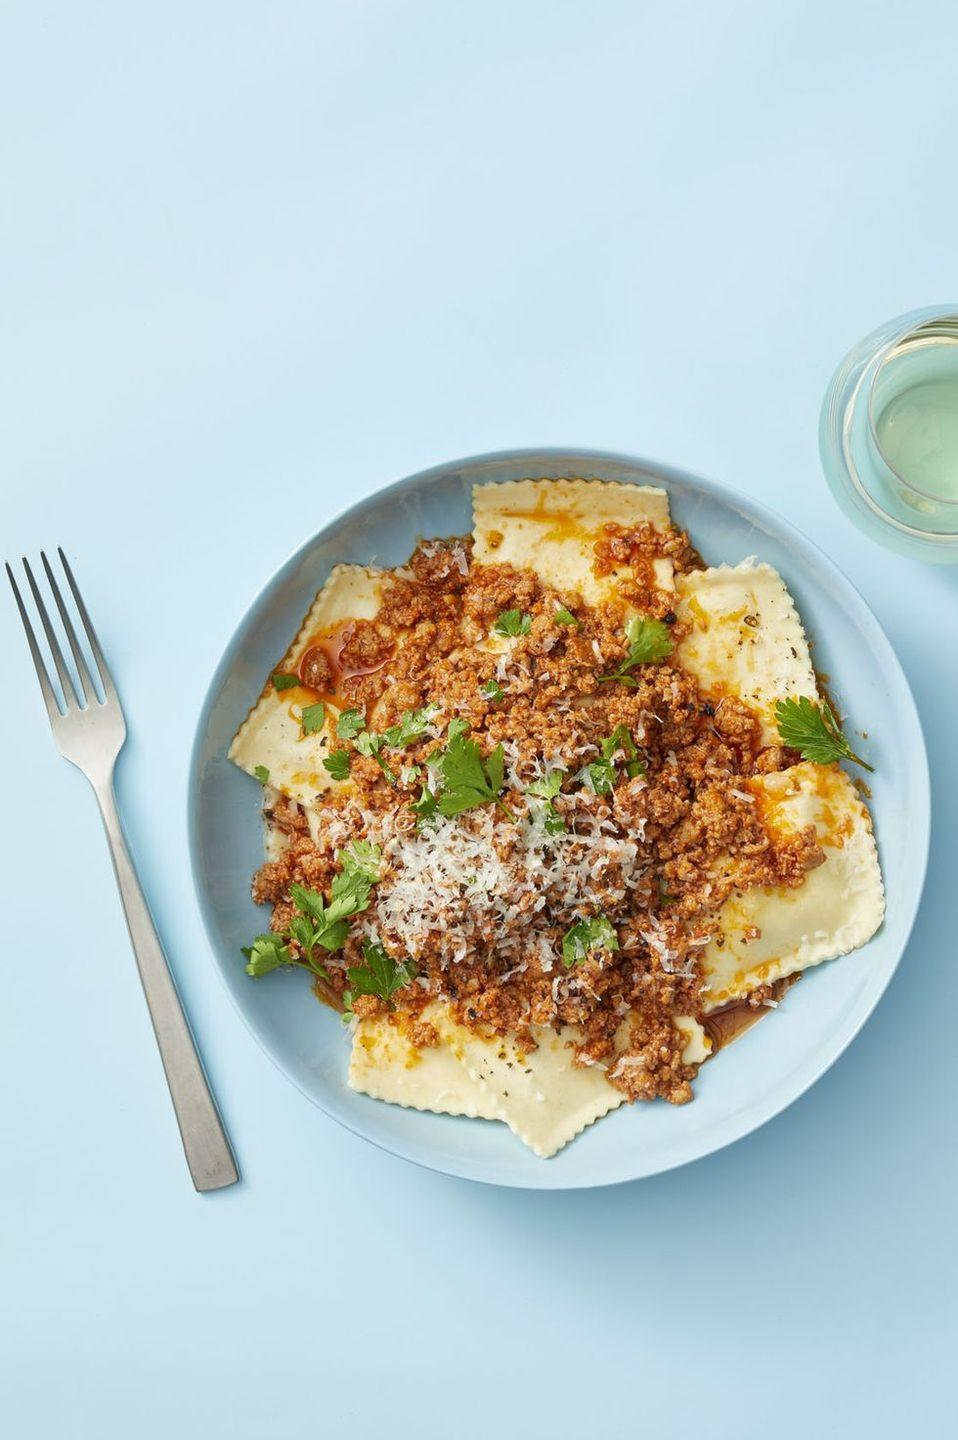 "<p>A speedy sauce made with ground pork and white wine means you could be eating this in less than 20 minutes flat!</p><p><em><a href=""https://www.goodhousekeeping.com/food-recipes/easy/a25657117/quick-pork-ragu-with-ravioli-recipe/"" rel=""nofollow noopener"" target=""_blank"" data-ylk=""slk:Get the recipe for Quick Pork Ragu With Ravioli »"" class=""link rapid-noclick-resp"">Get the recipe for Quick Pork Ragu With Ravioli »</a></em></p>"